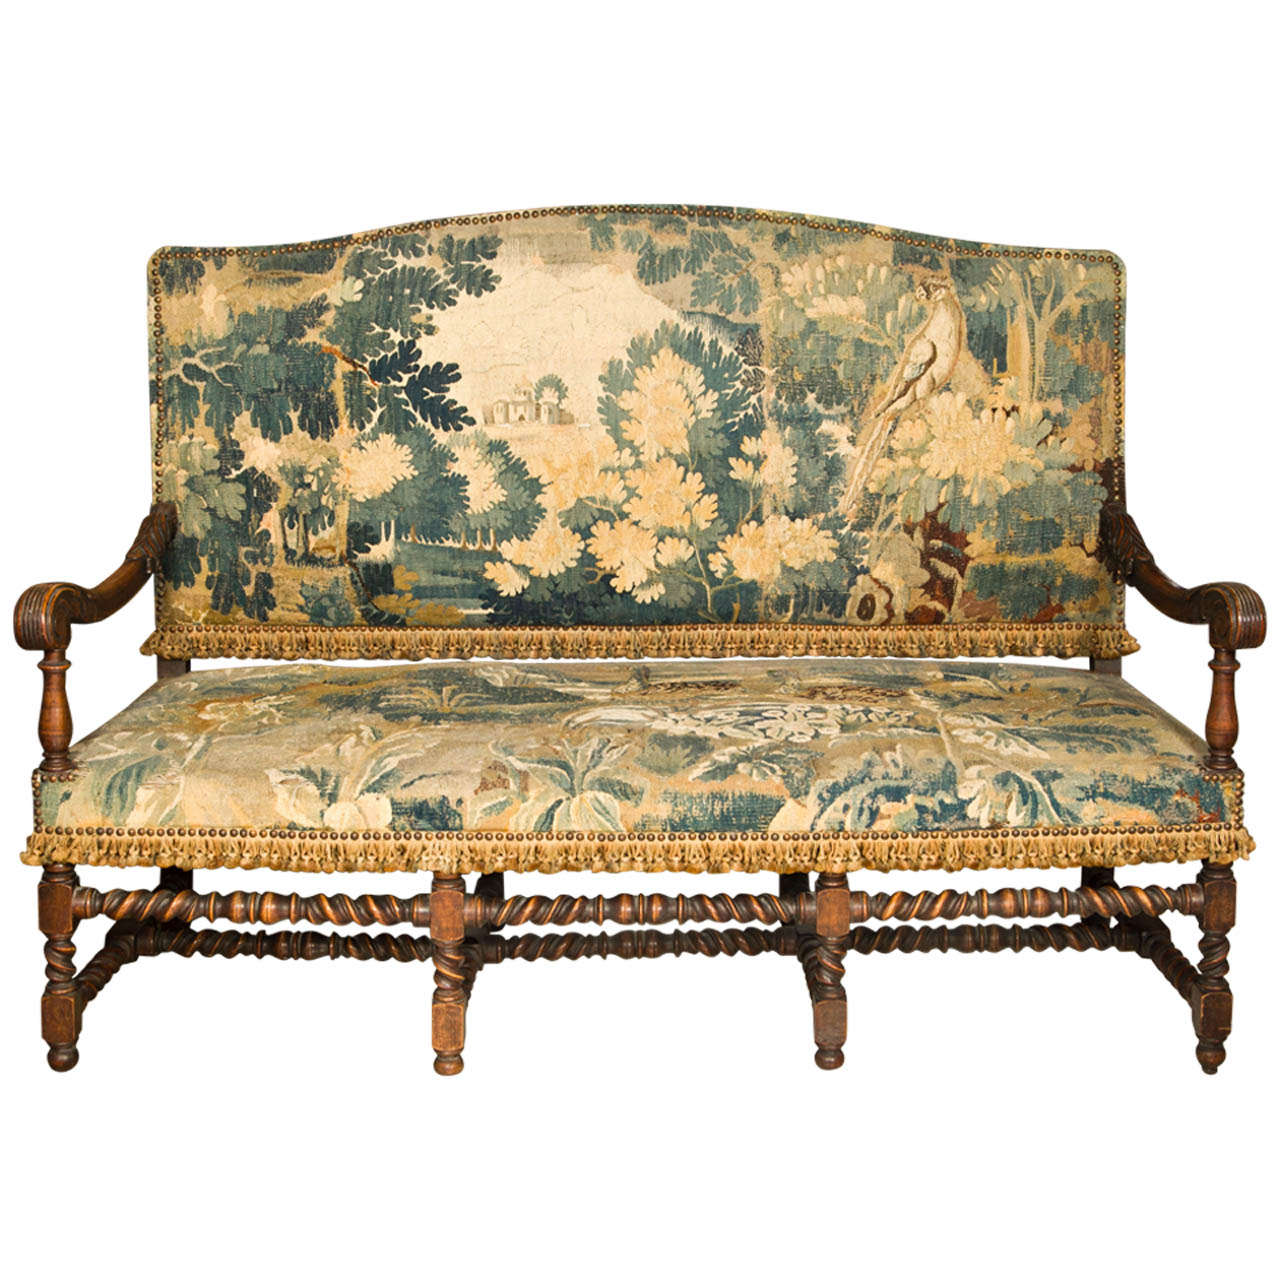 19thc English Oak Hall Bench Settee With Antique Tapestry At 1stdibs